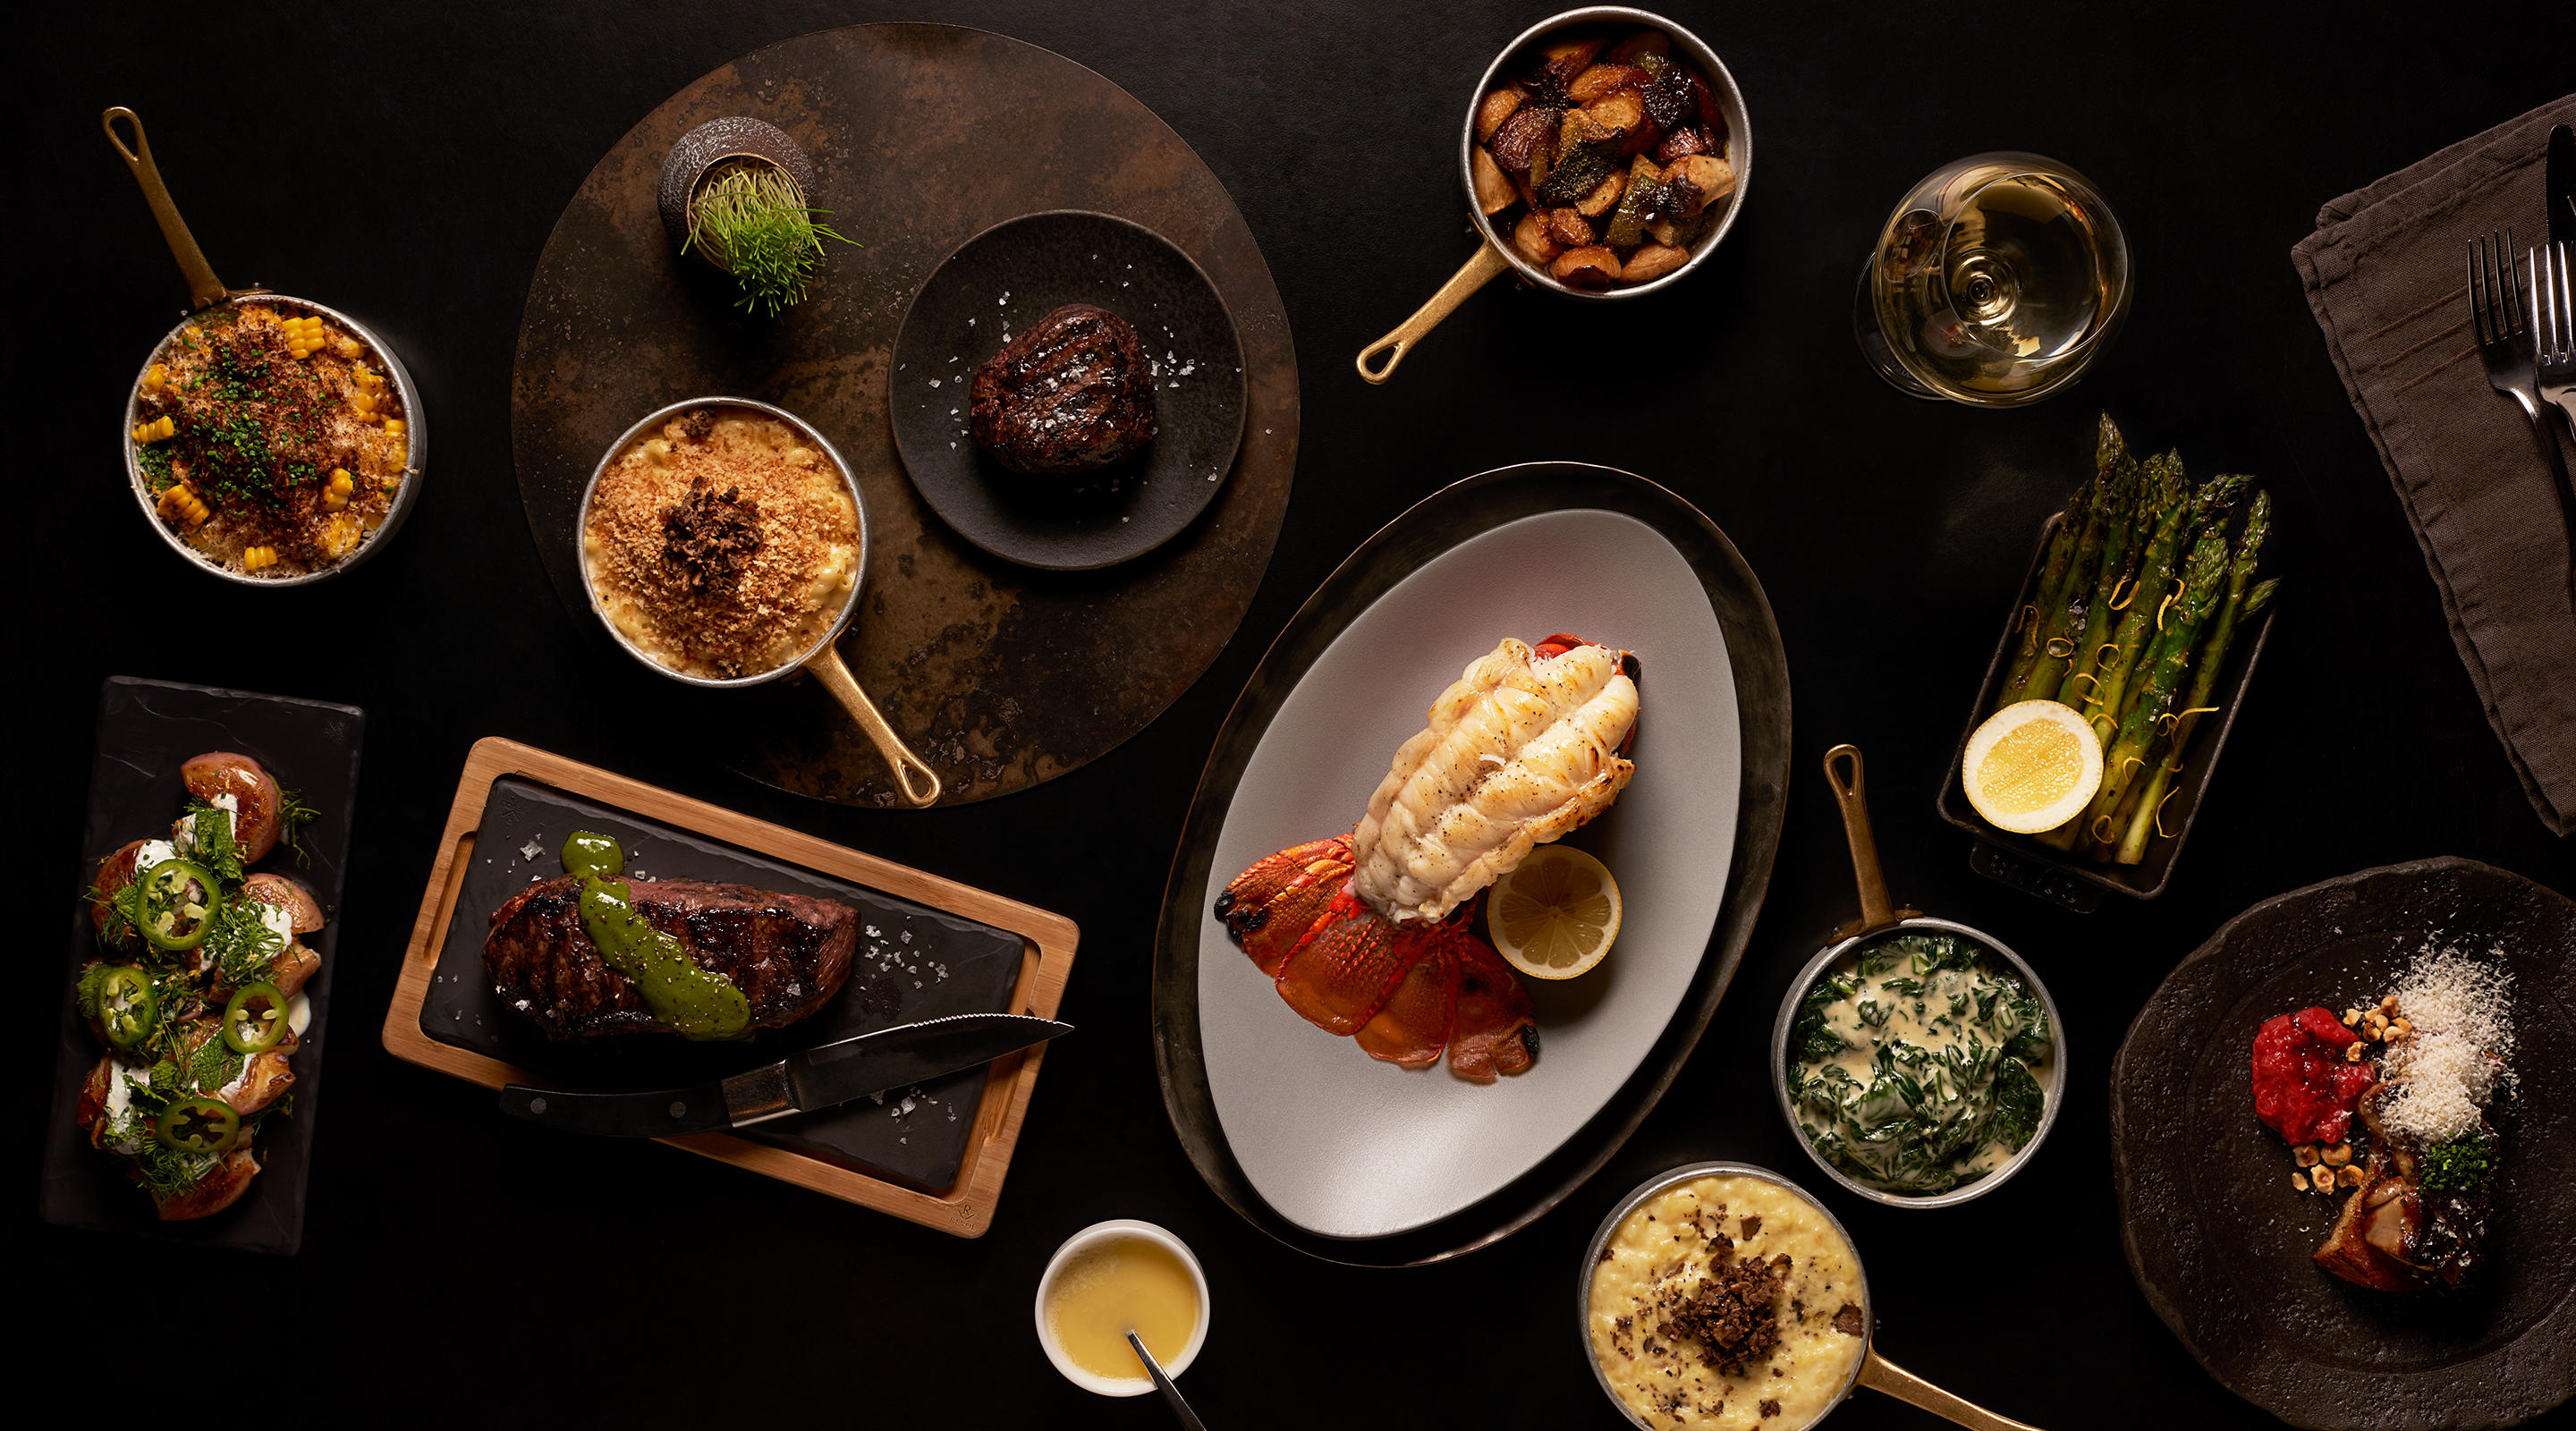 A premium steakhouse dining experience awaits at Jean Georges Steakhouse.